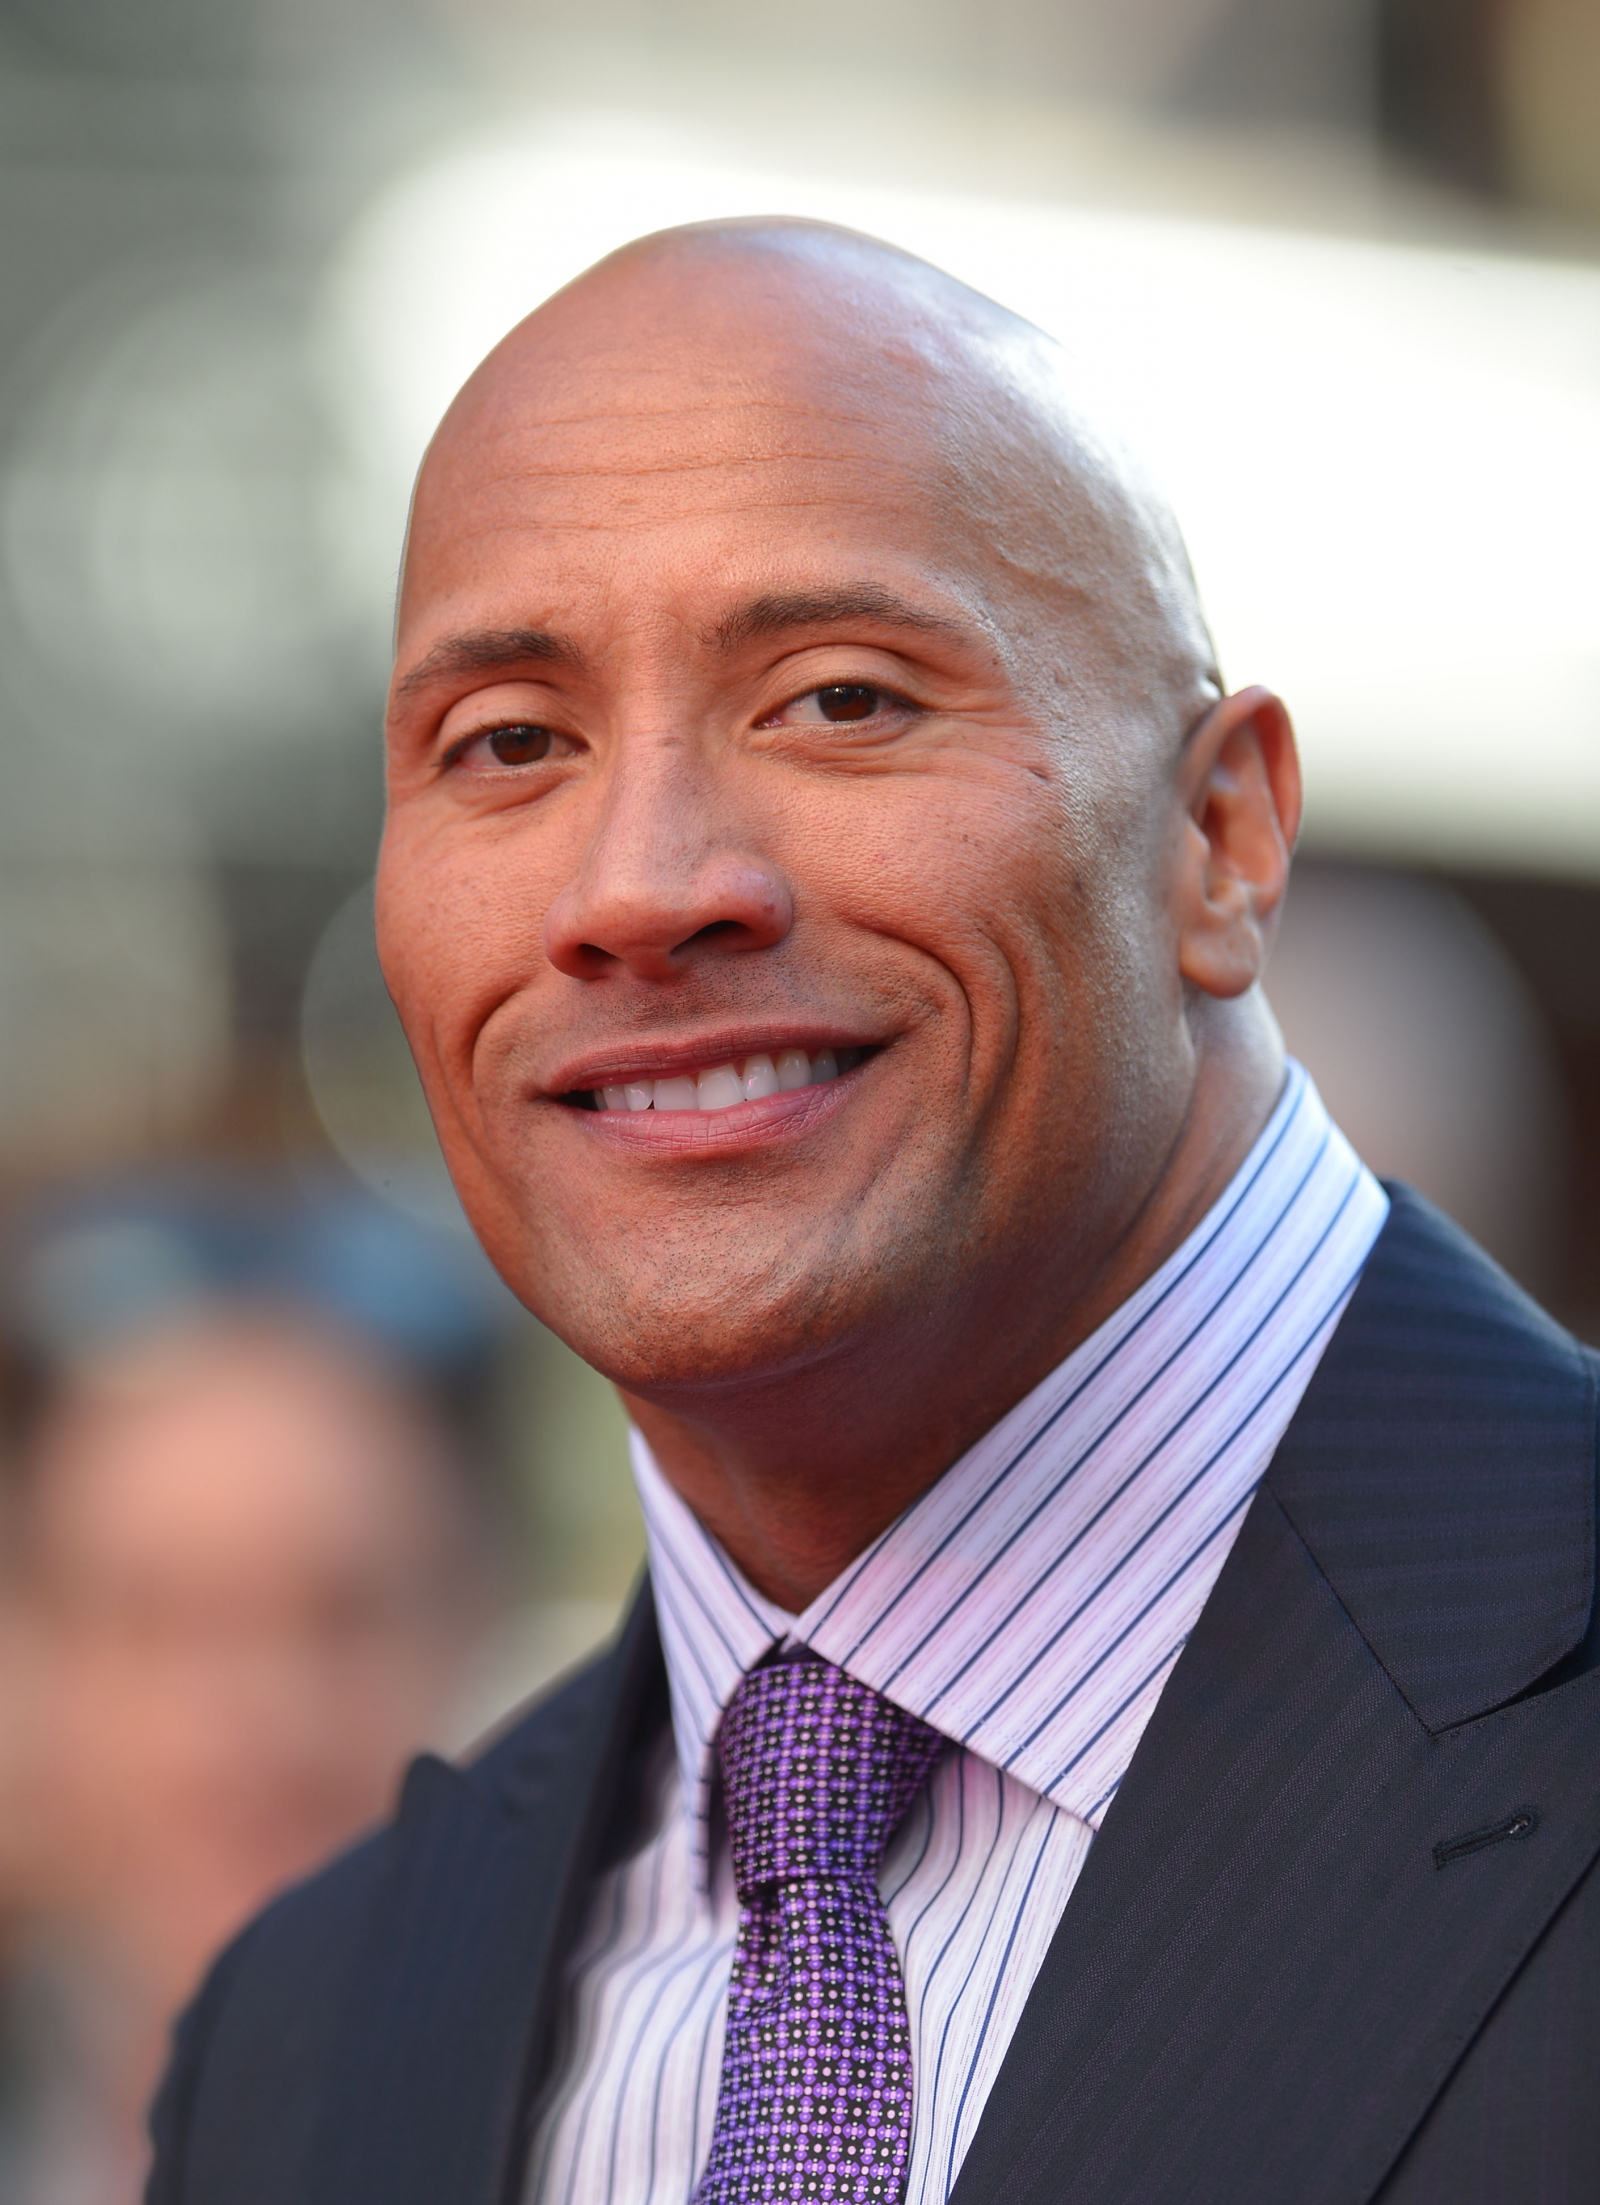 Dwayne Johnson sends his thoughts for injury hit Rob Gronkowski who will miss Super Bowl 2017